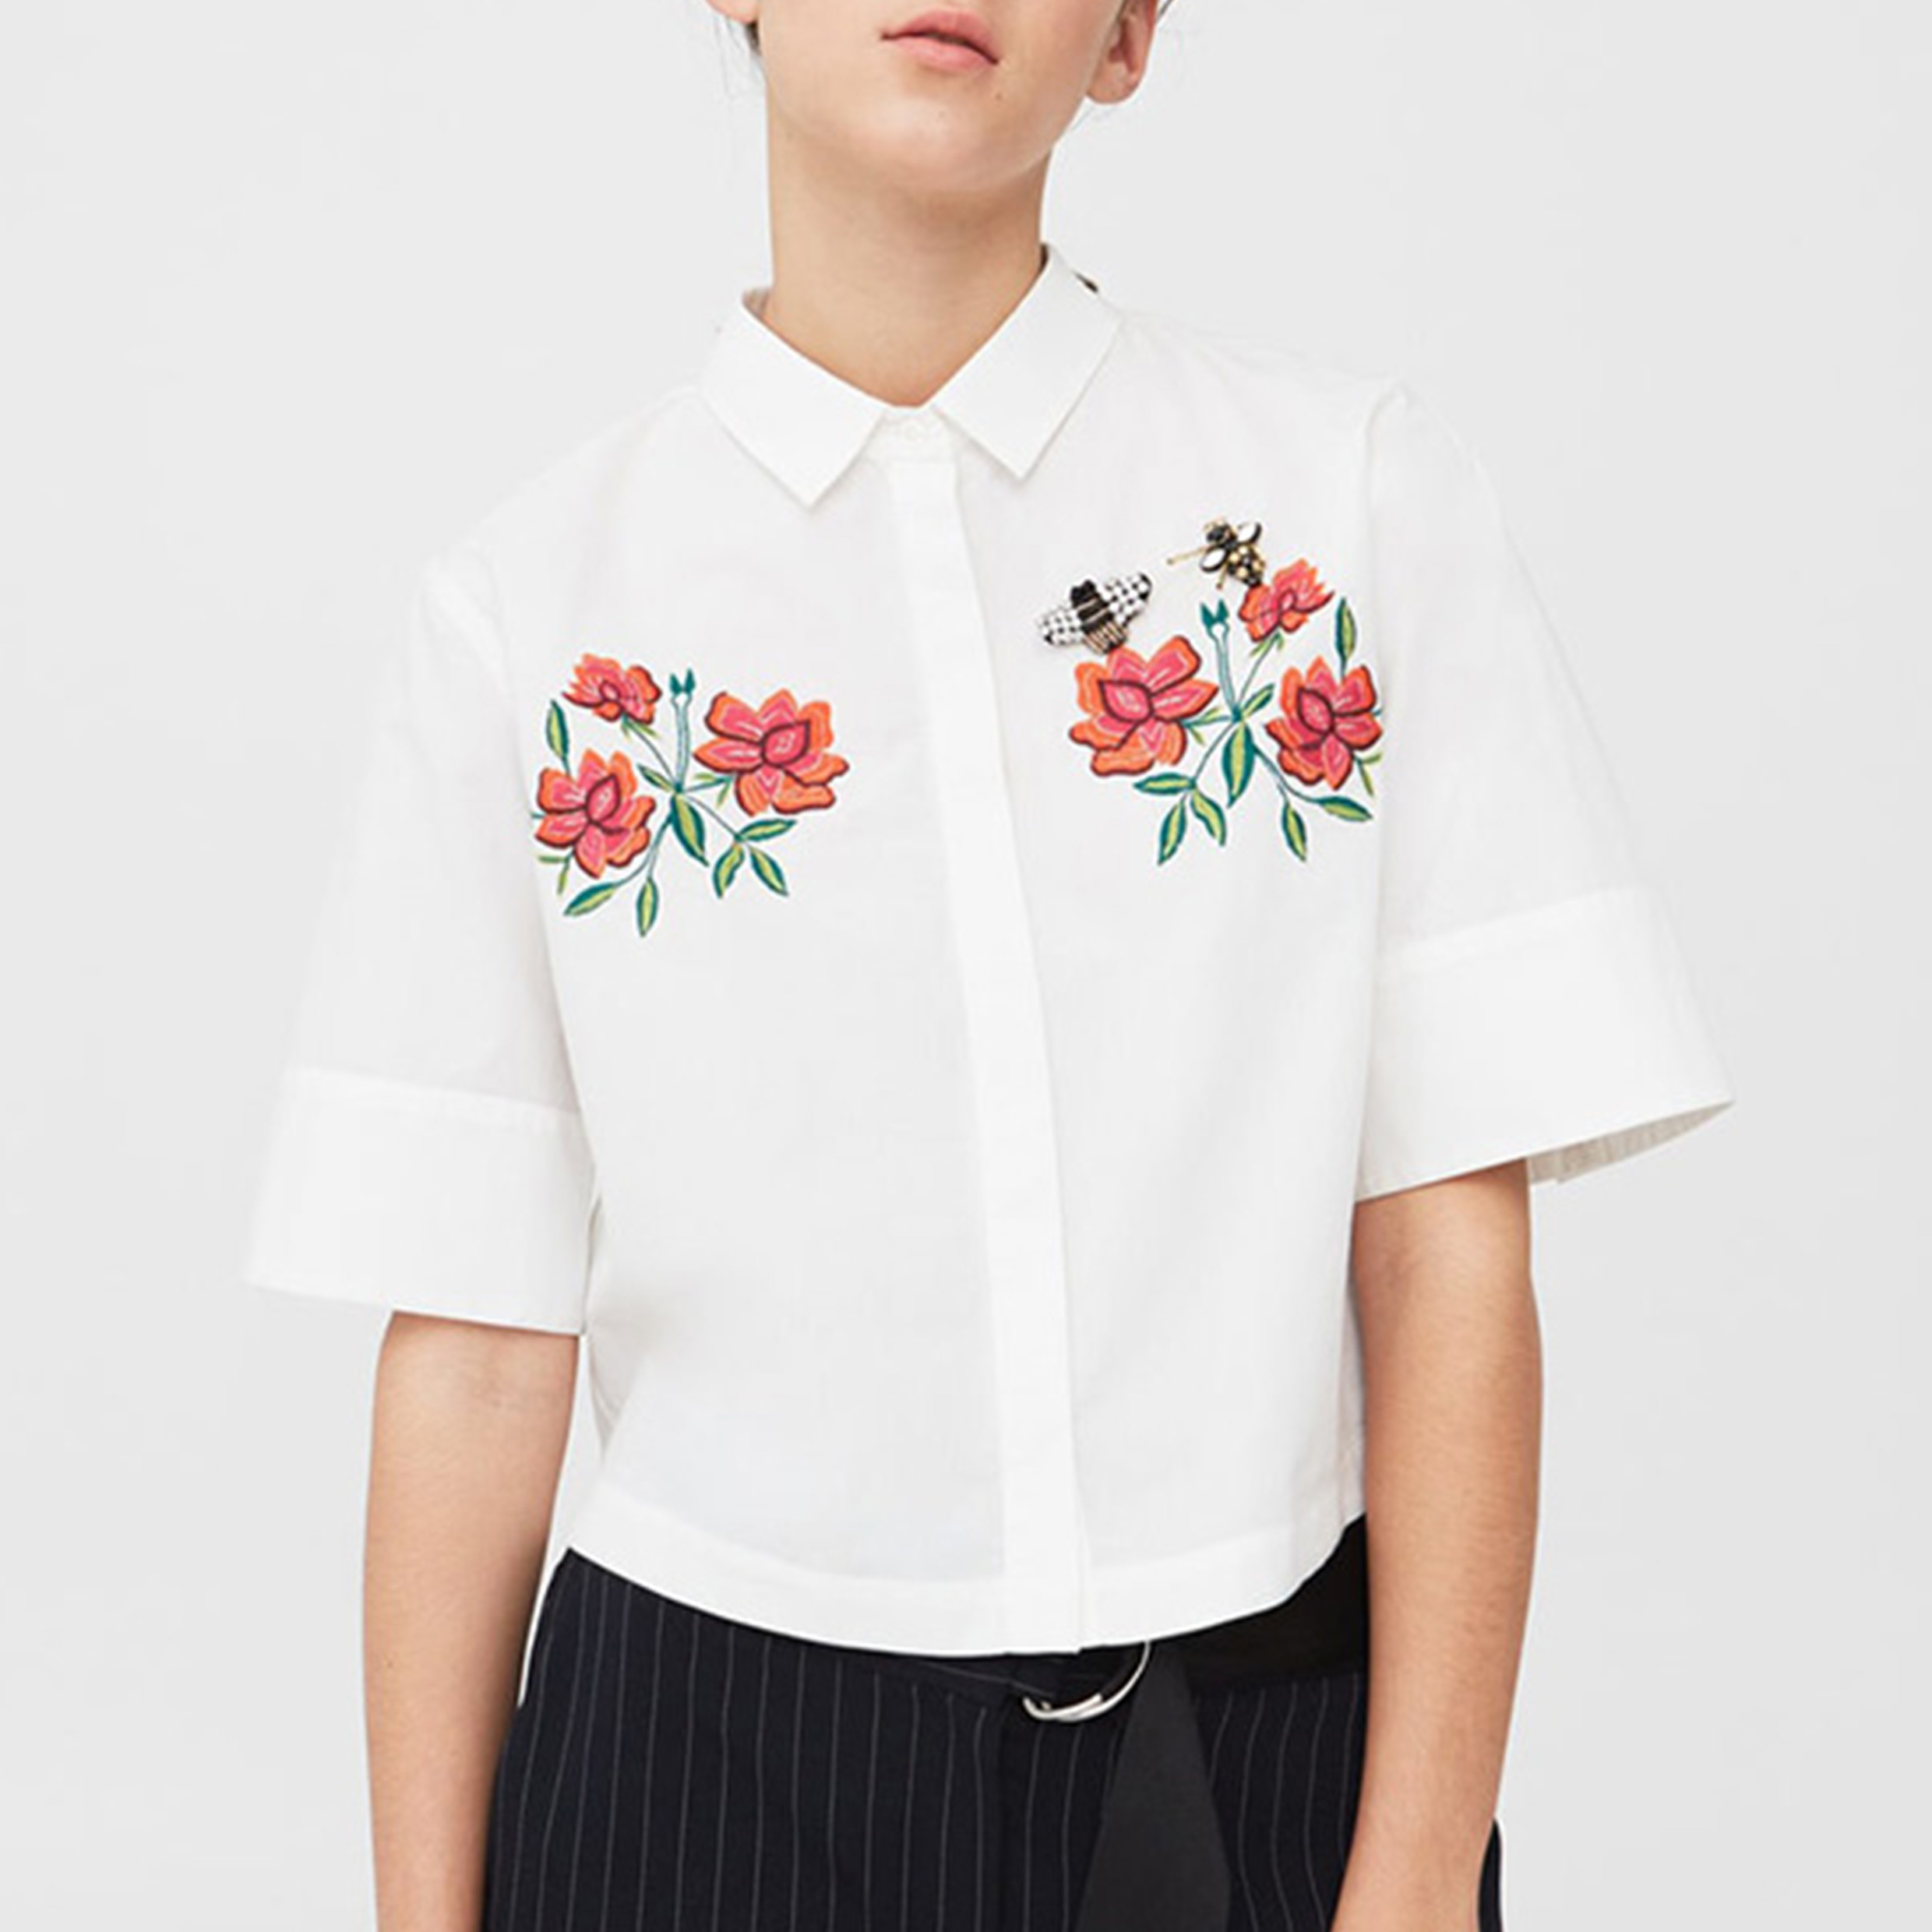 Ladies Fashion Embroidery Cotton T-Shirt Blouse